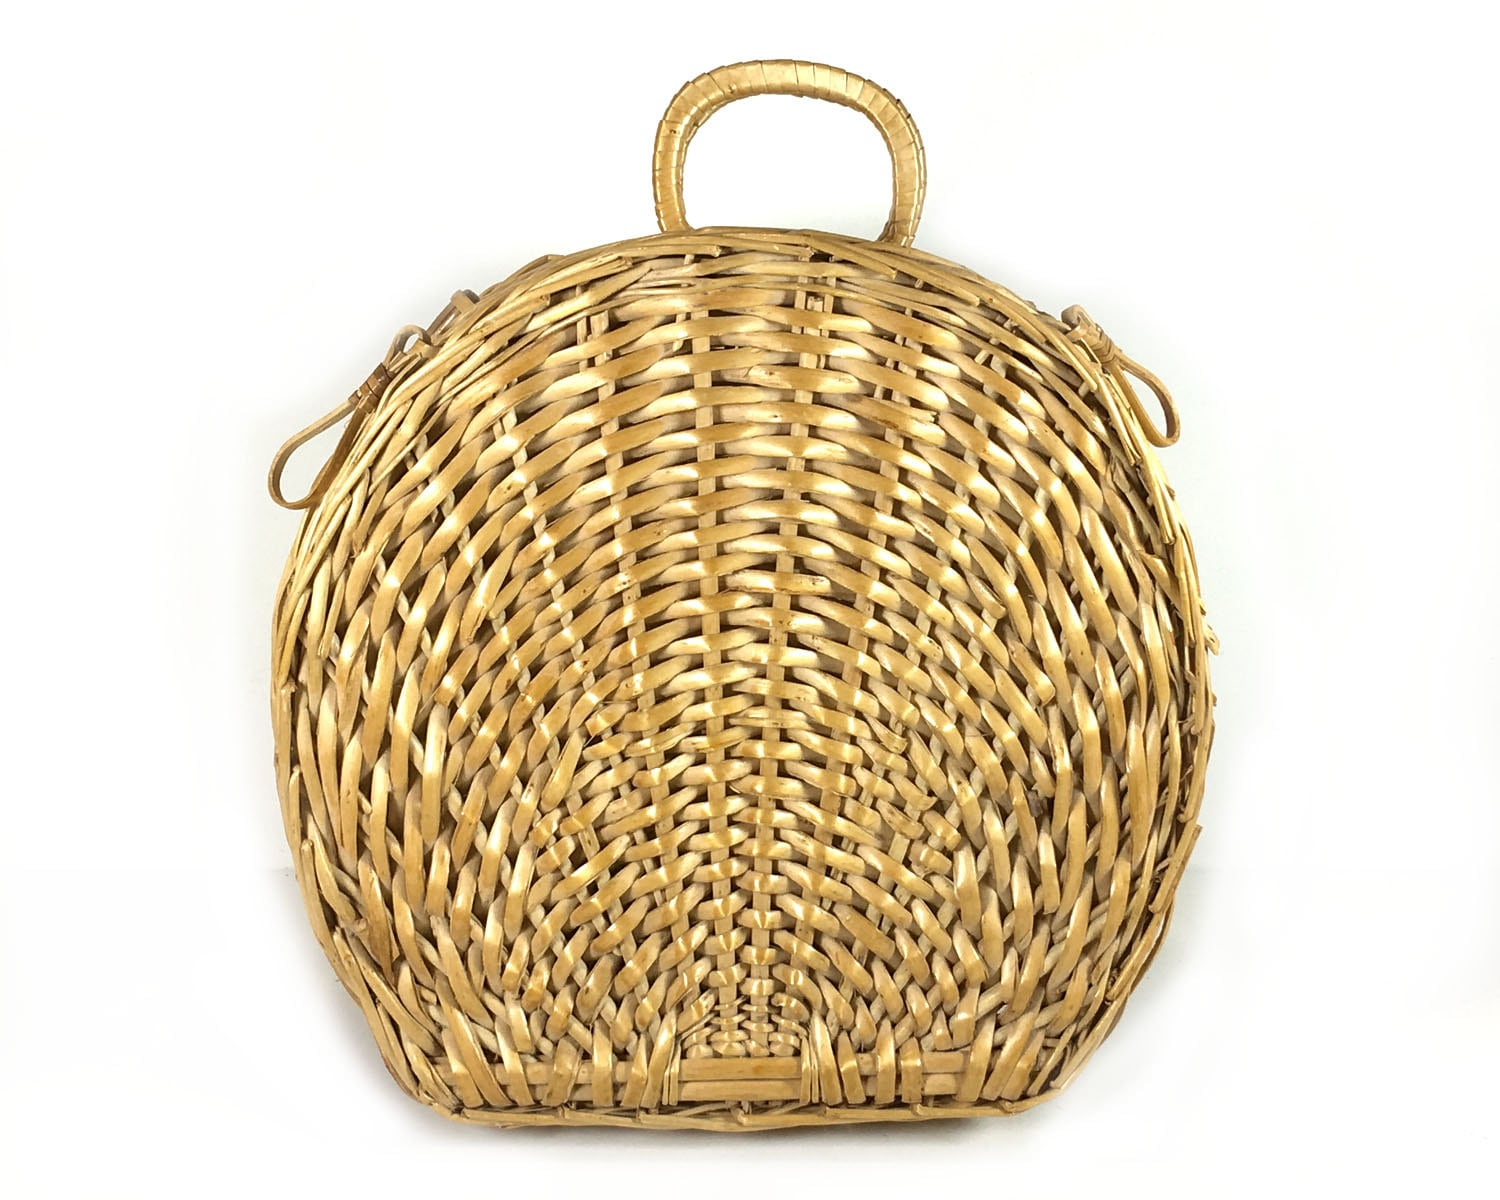 Woven Basket With Hinged Lid : Small shell shaped lightweight wicker basket with hinged lid